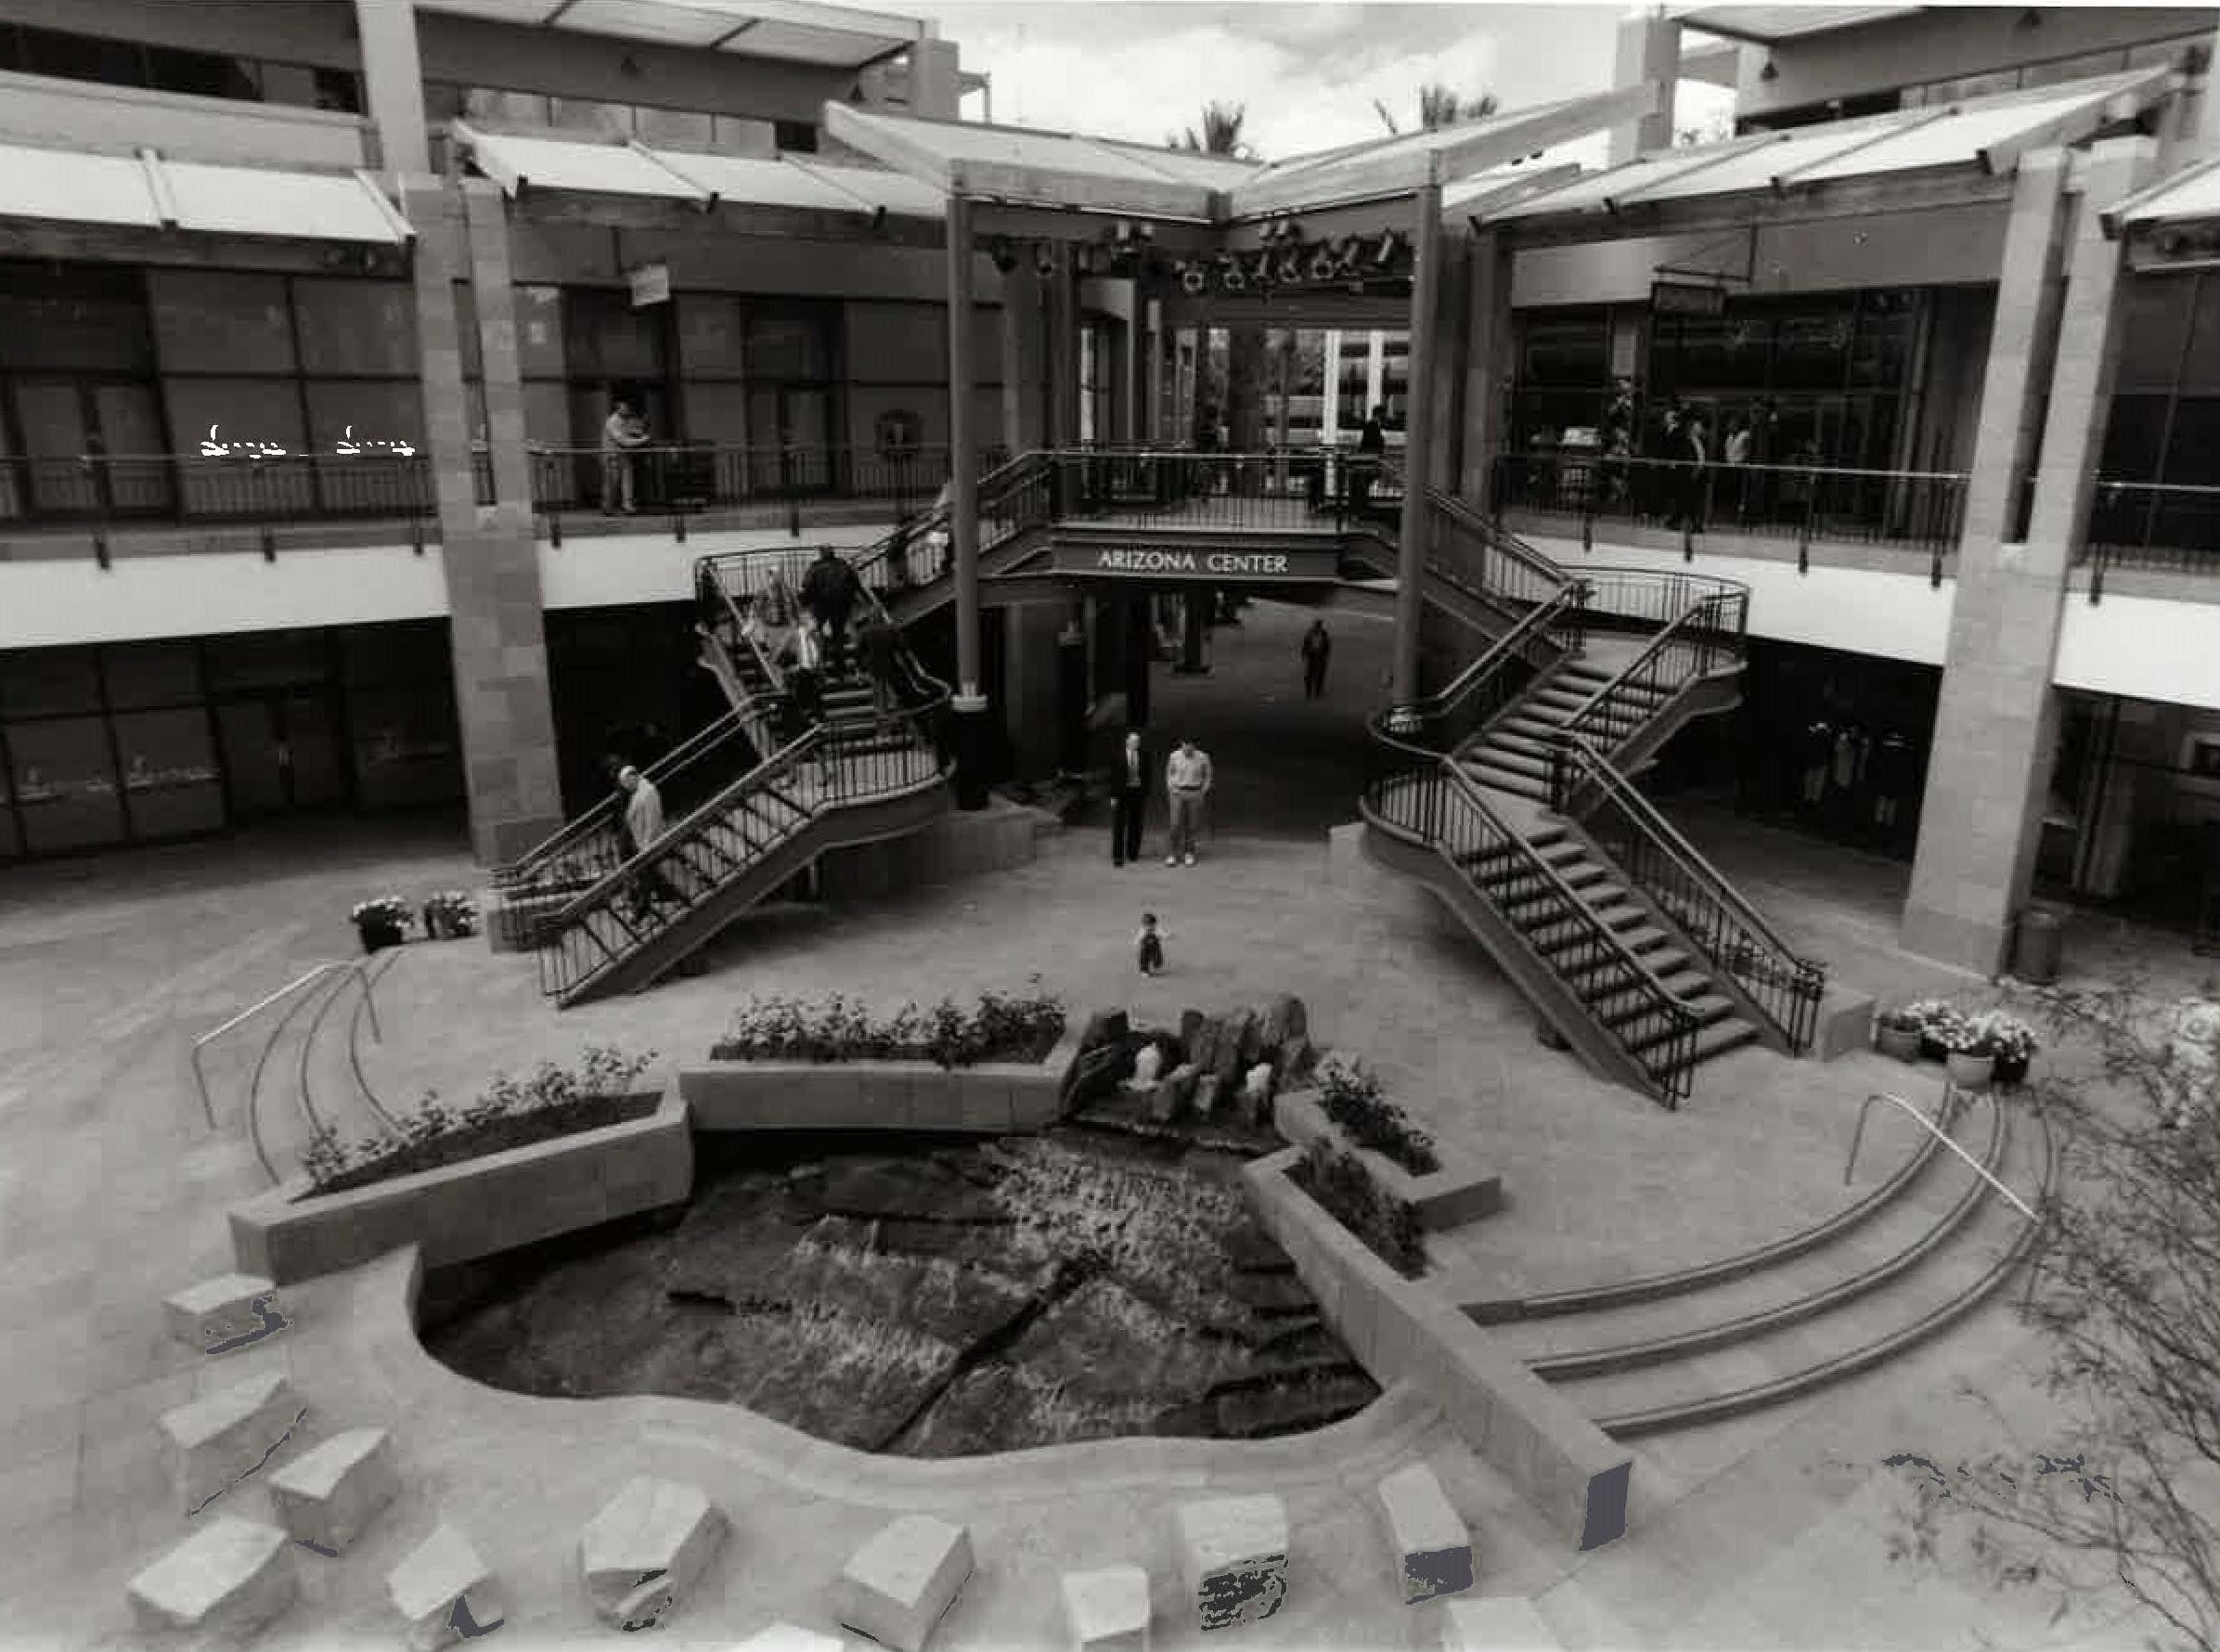 The Arizona Center on March 15, 1991.